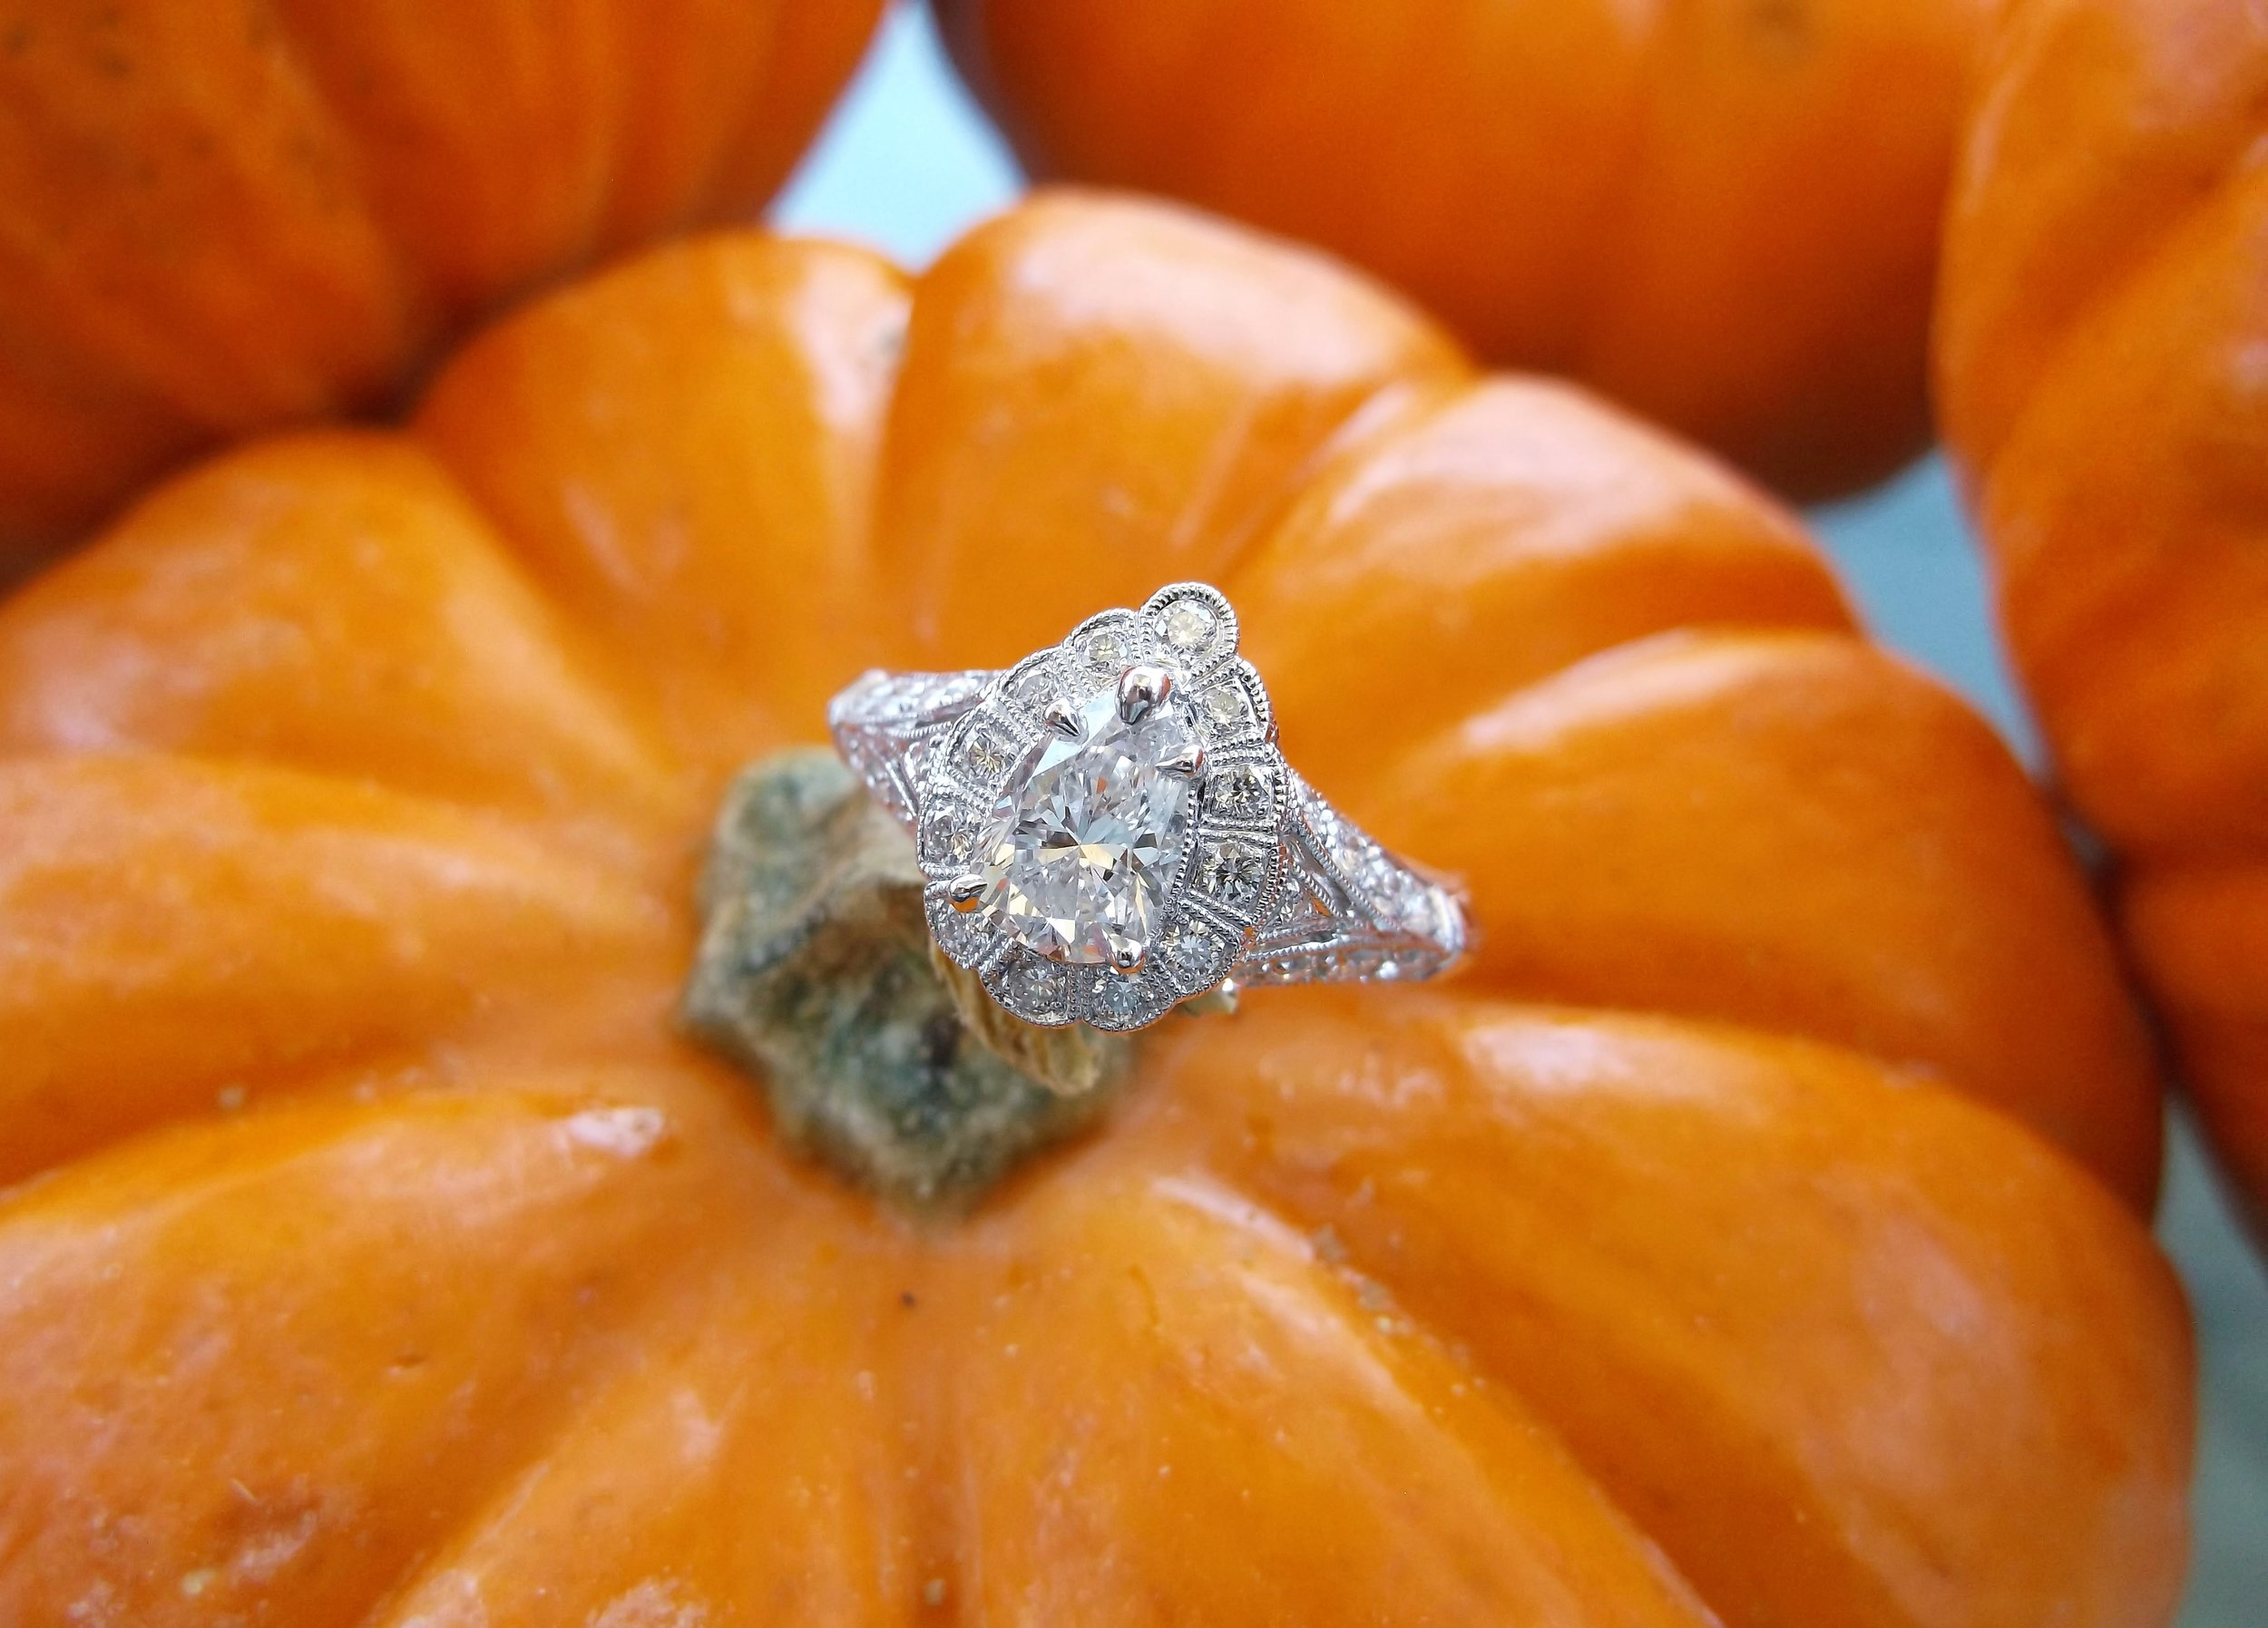 SOLD - Enchanting 0.62 carat pear shaped diamond set in a detailed diamond and white gold mounting.